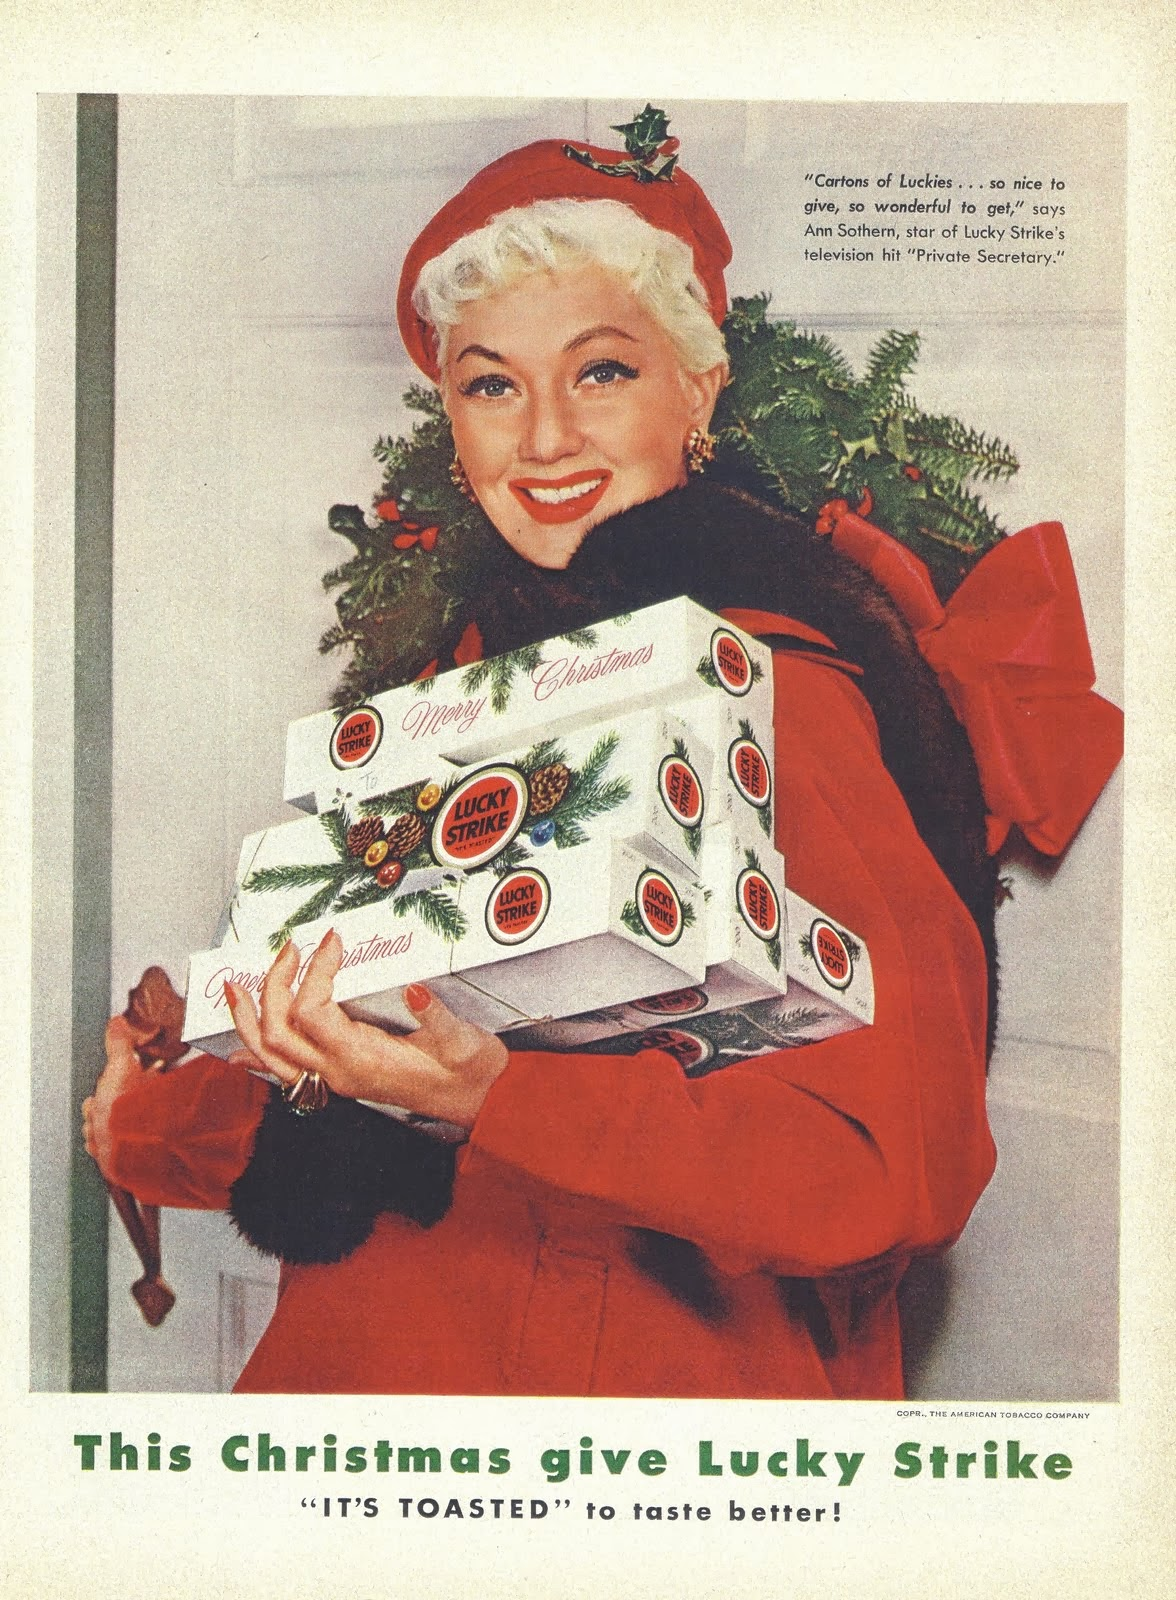 24 VINTAGE CHRISTMAS CIGARETTE ADS Popthomology